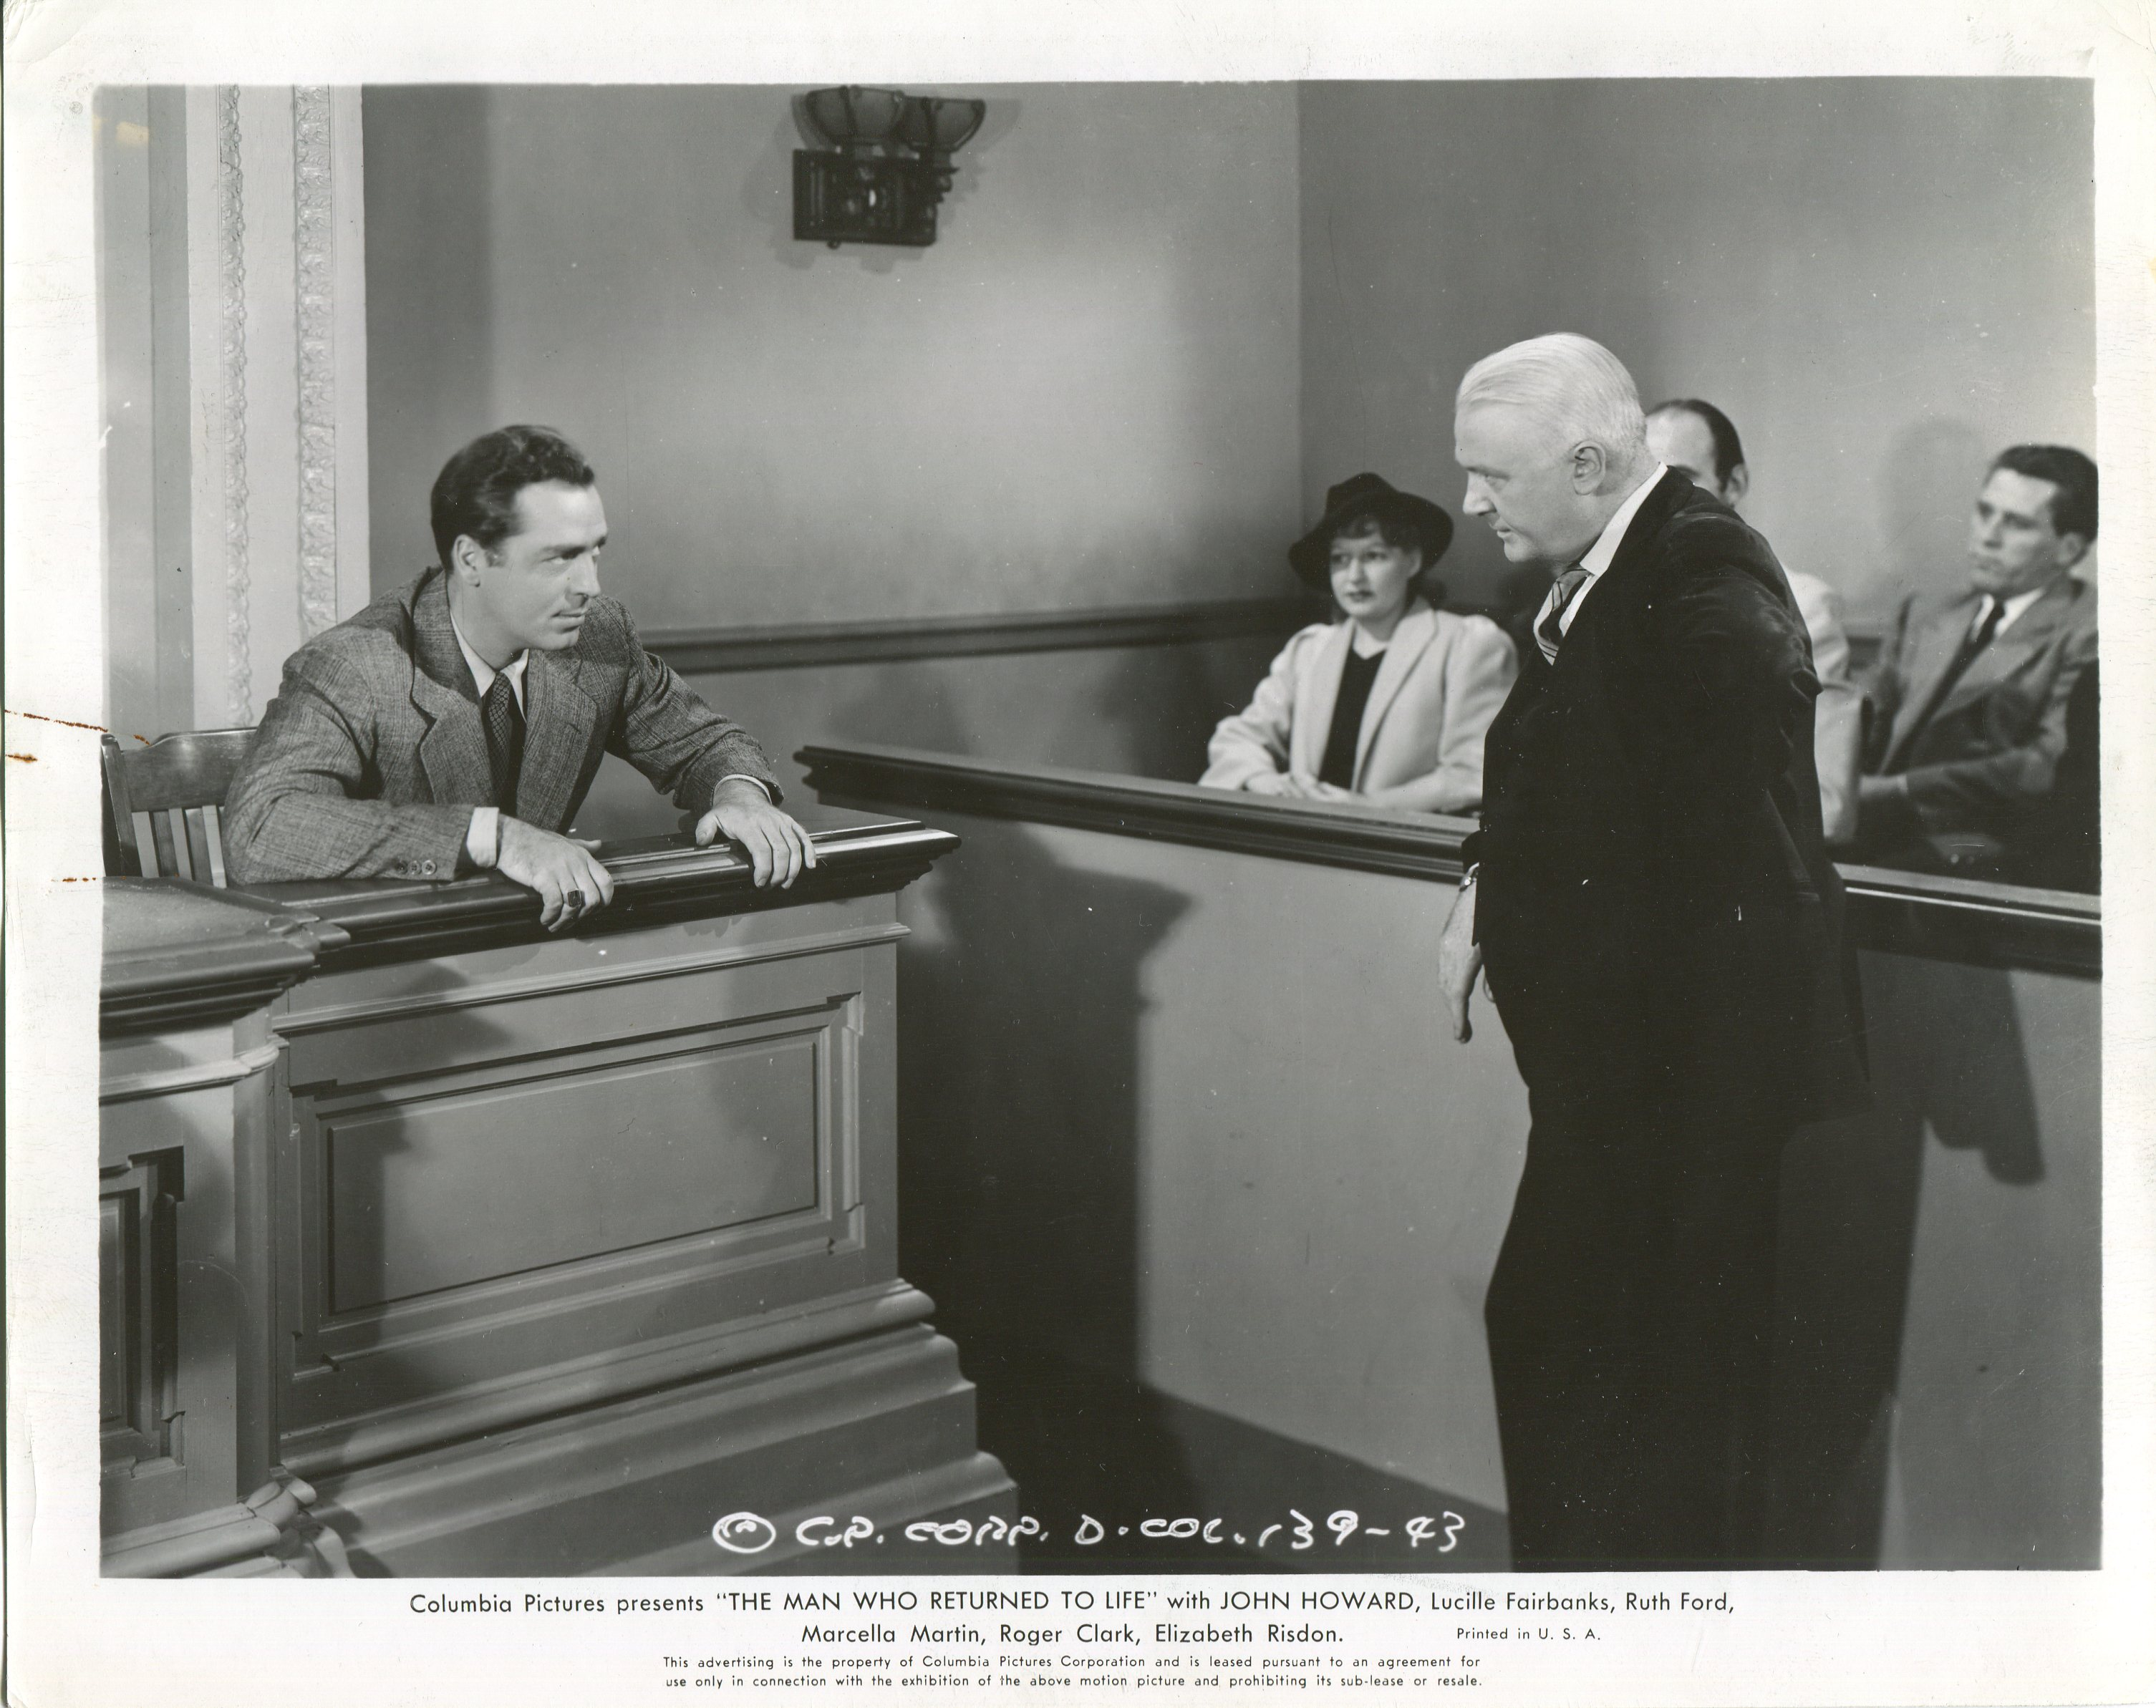 John Howard and Charles C. Wilson in The Man Who Returned to Life (1942)